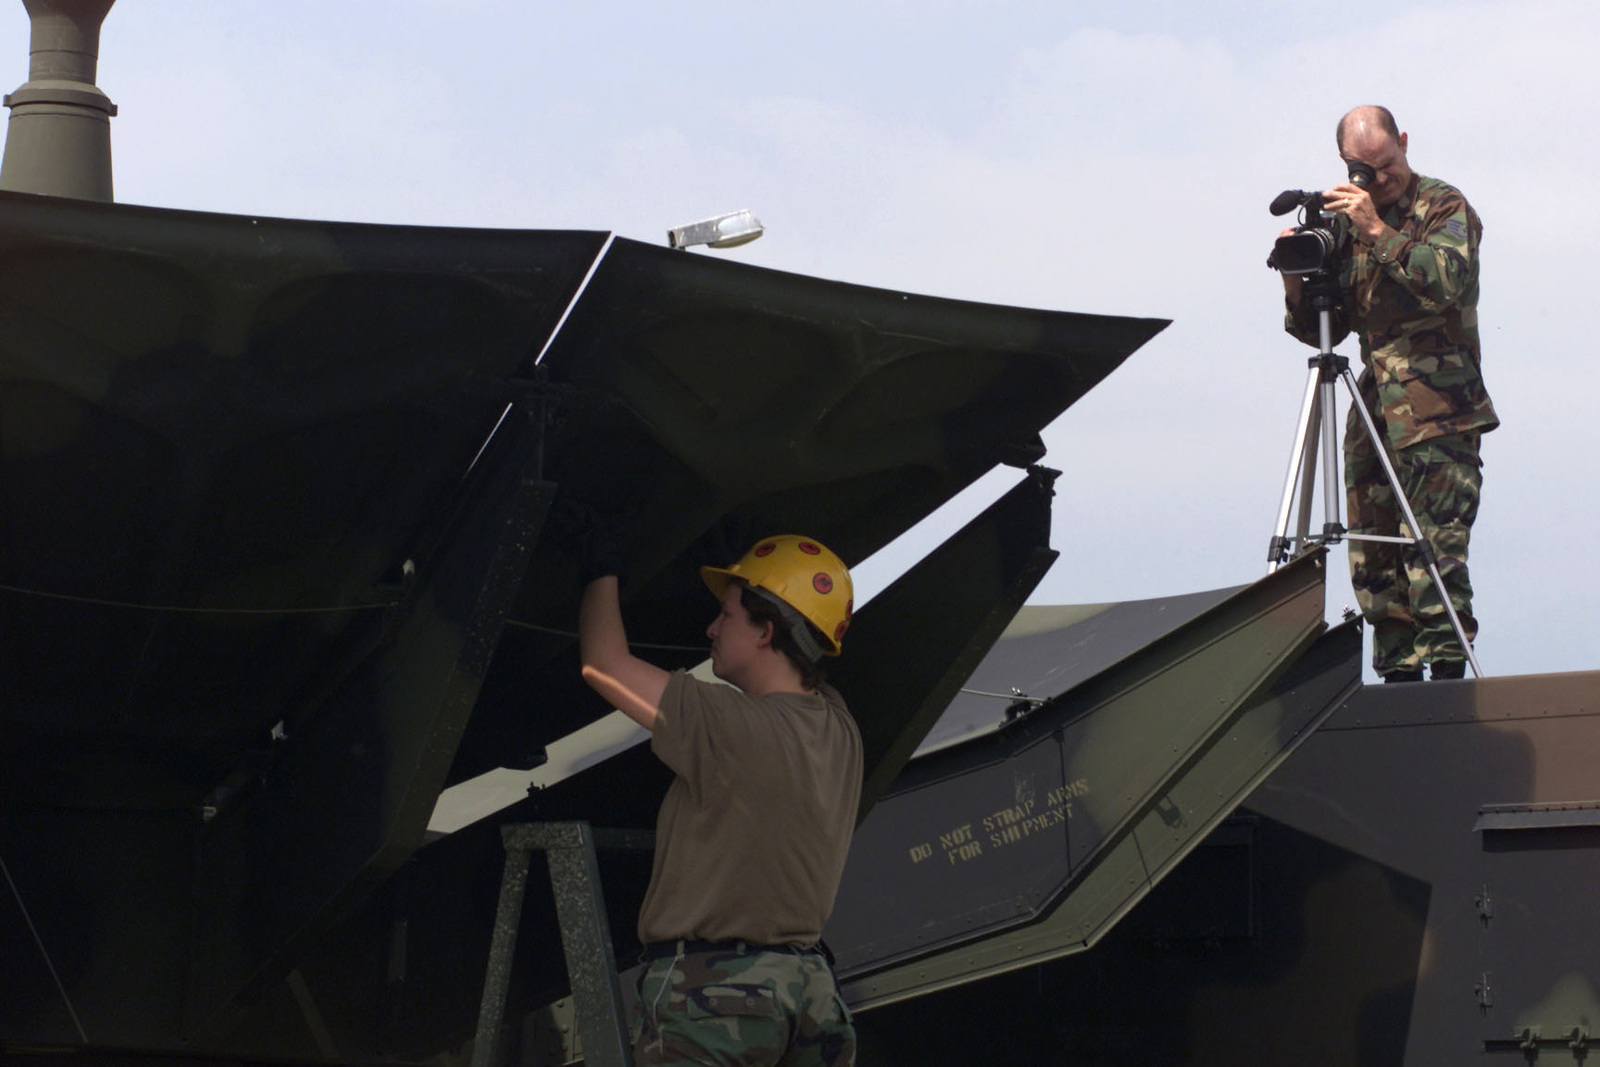 US Air Force STAFF Sergeant Ricky Anderson (Right), 31st Communications Squadron, Video Documentation Journeyman, Aviano Air Base, Italy, documents the assembly of a communications dish during VENETO RESCUE on May 31st, 2000